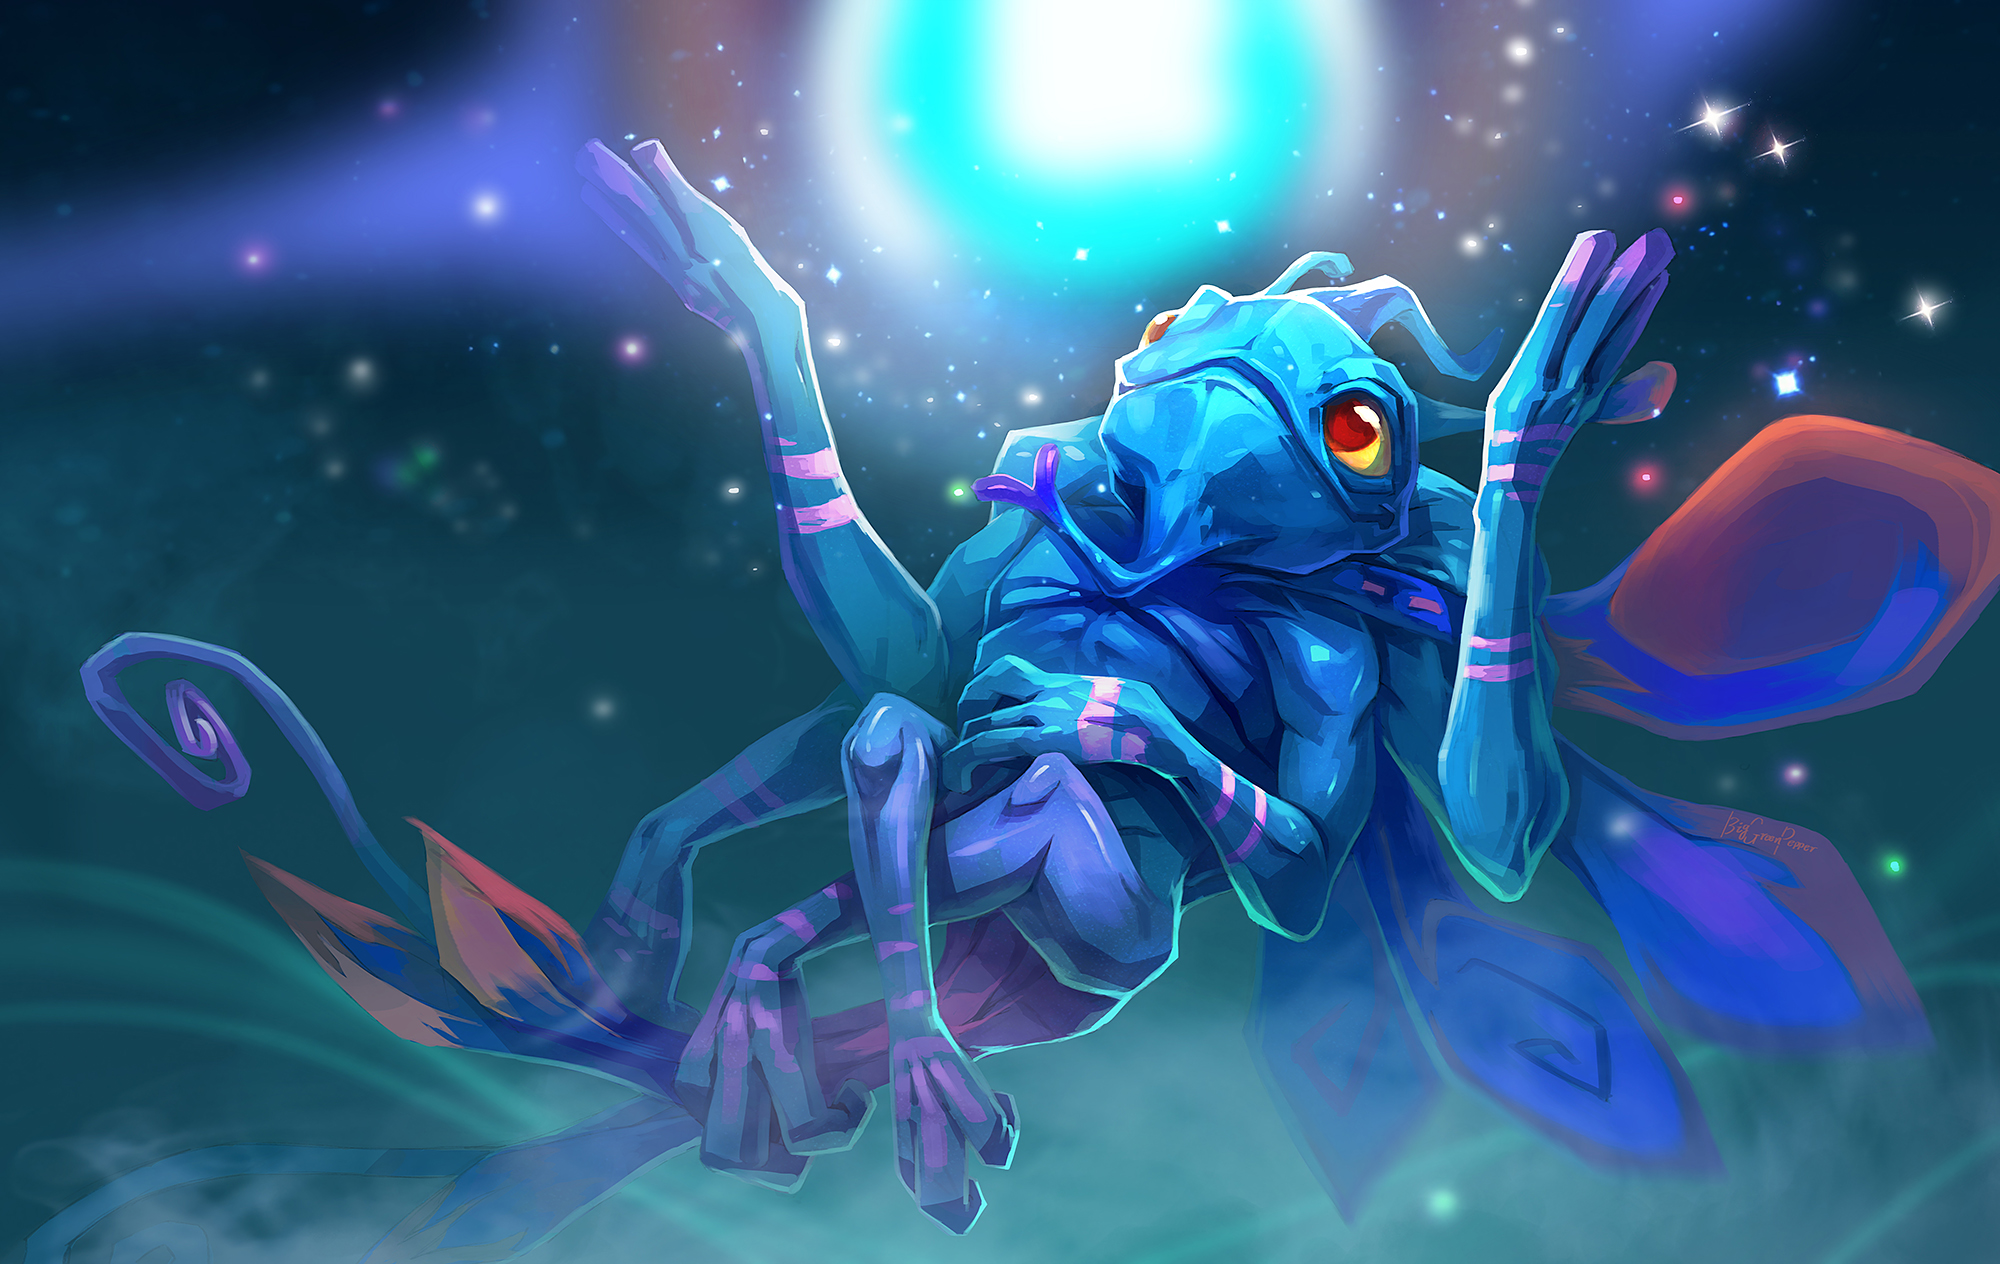 dota2 Puck by biggreenpepper on DeviantArt